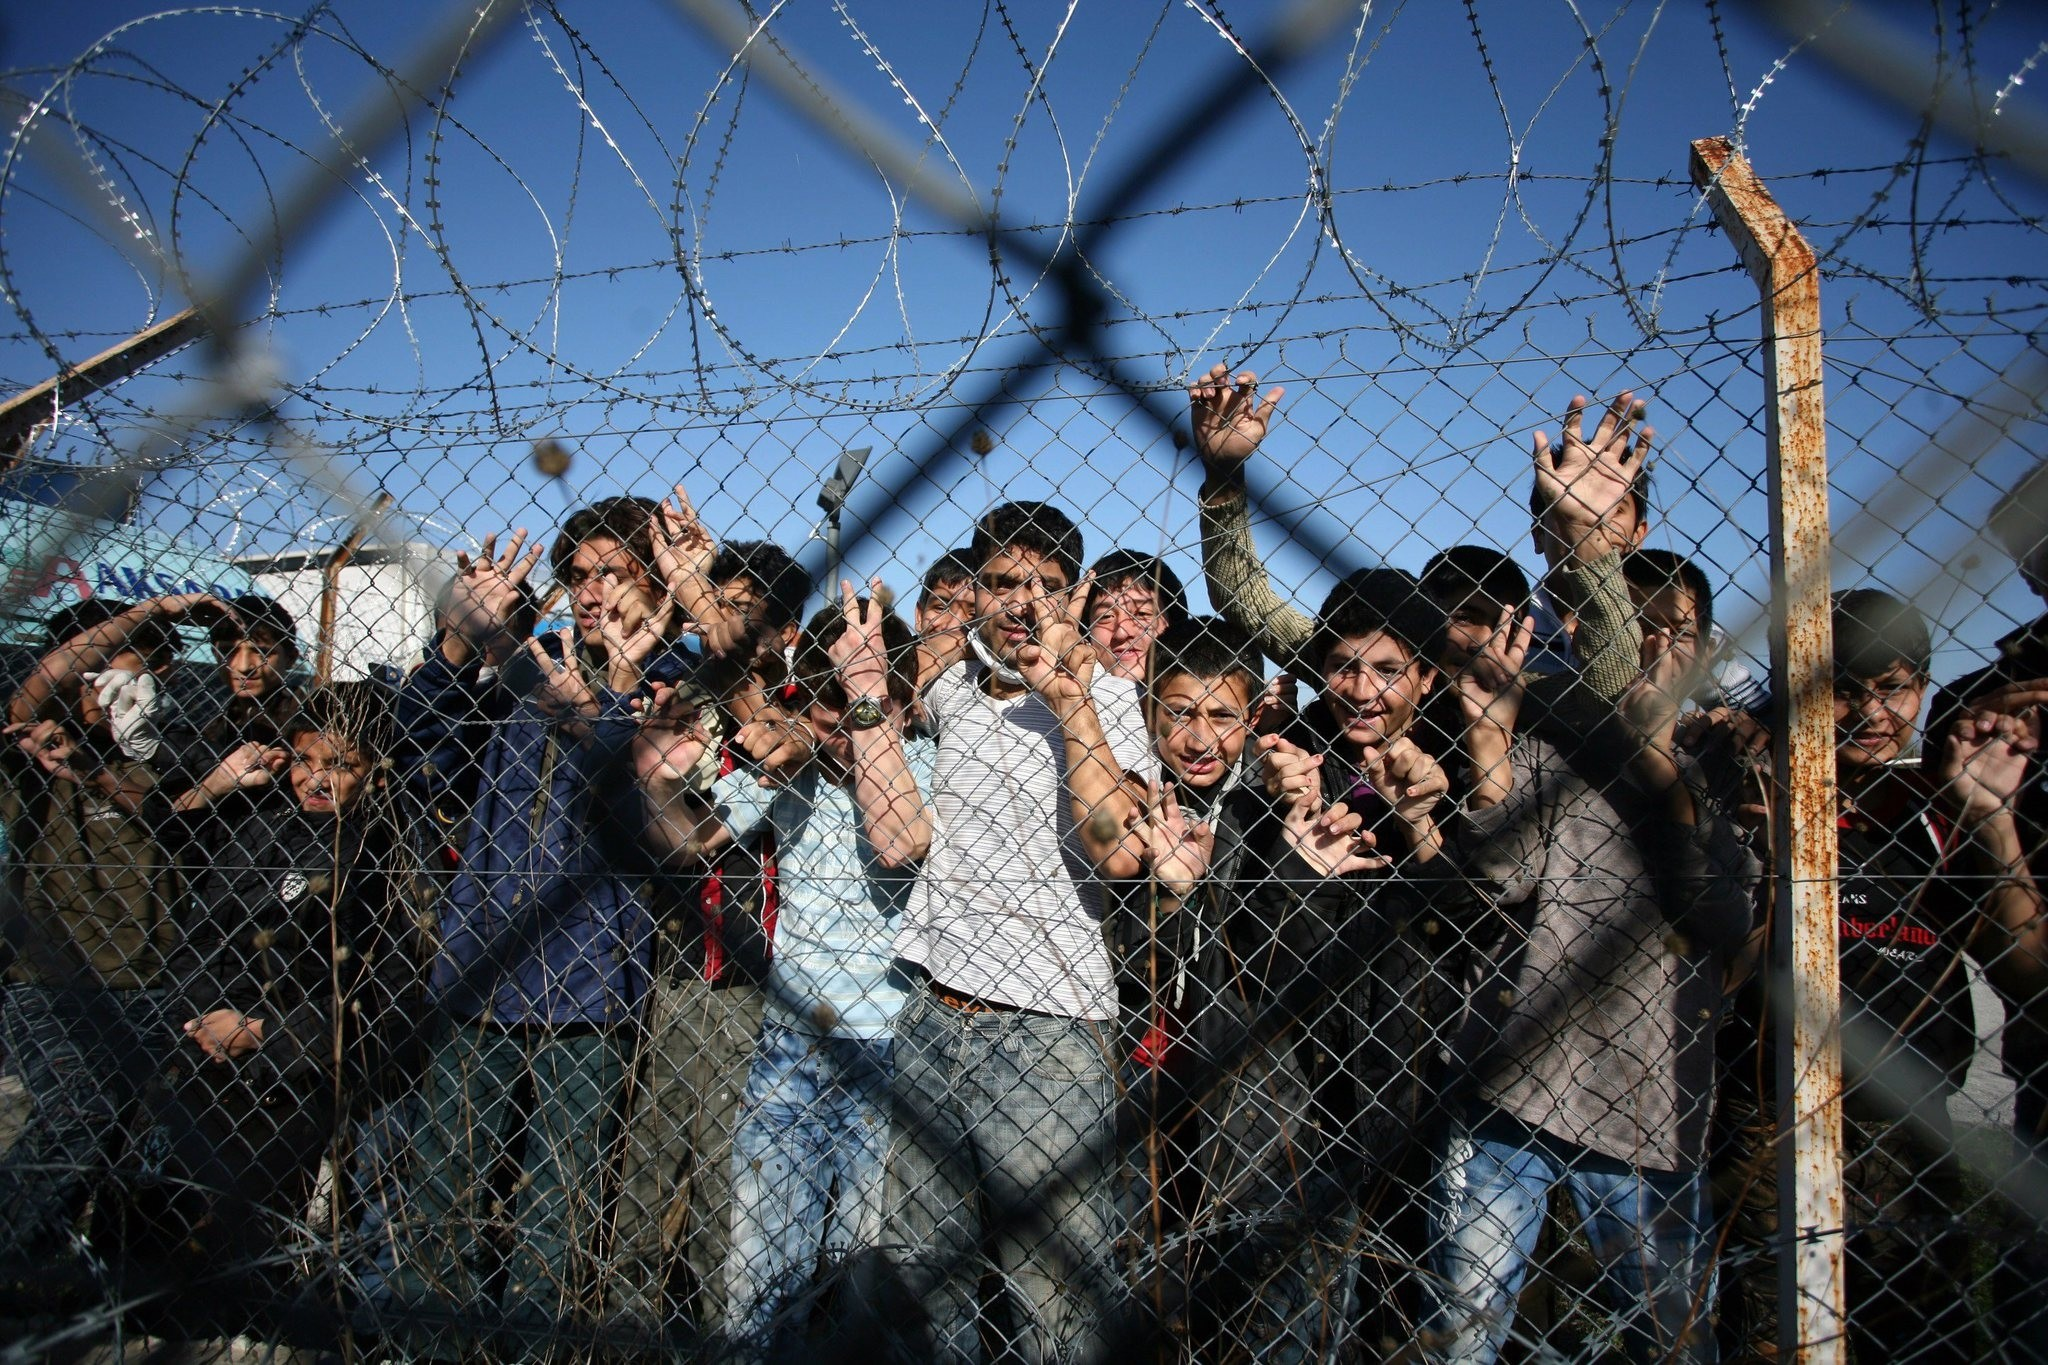 Immigrant minors peer out through the fence of an immigrant detention center in the village of Filakio, on the Greek-Turkish border. (AFP Photo)